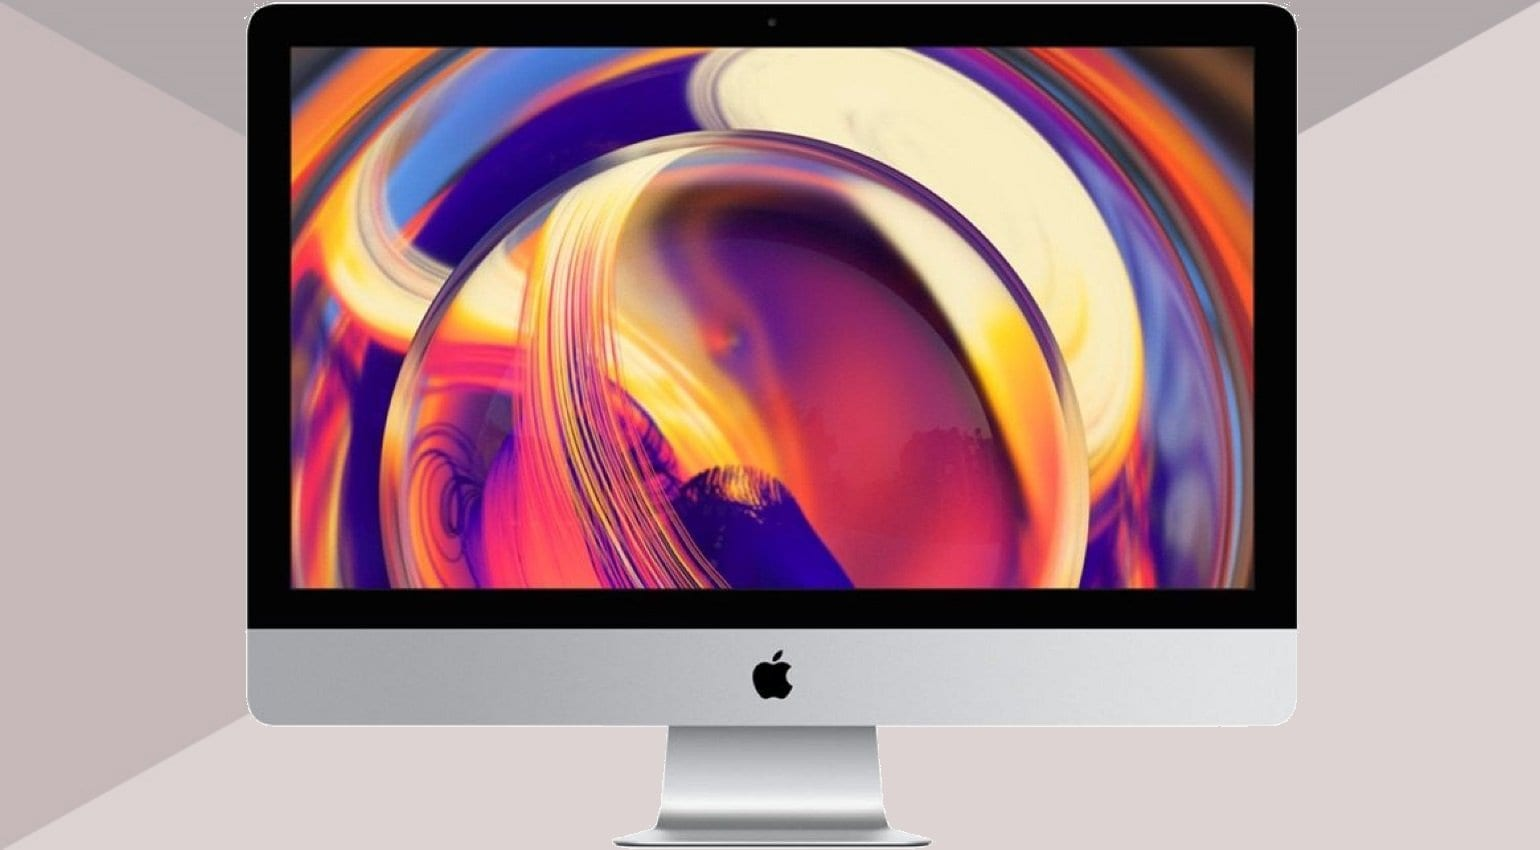 Le Imac 2019 Refresh New Desktop Machines For Musicians And Producers